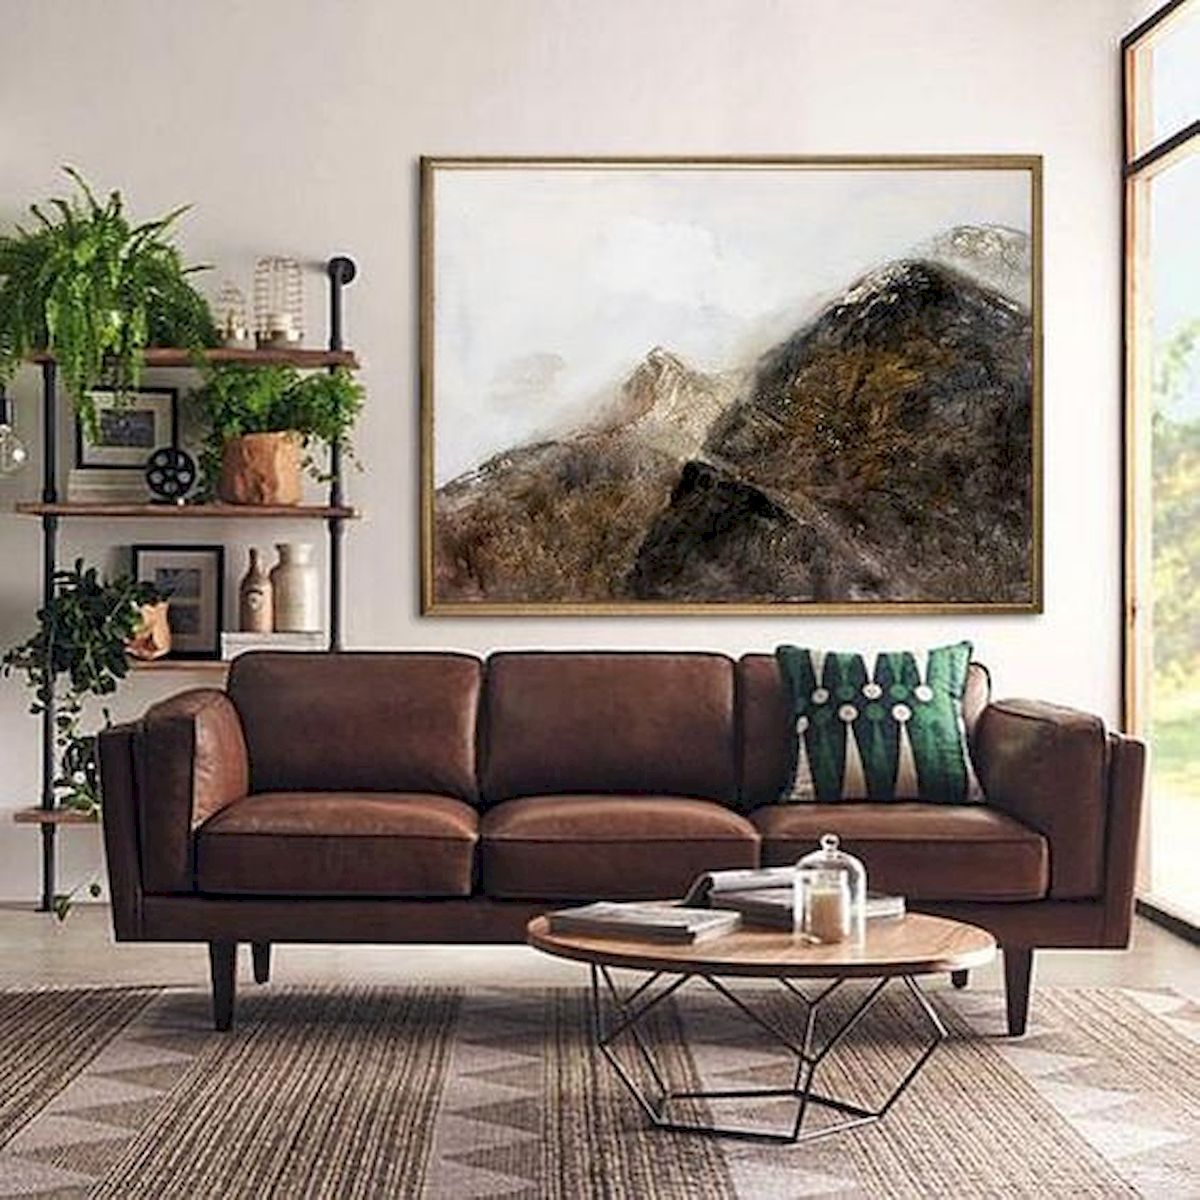 60 Living Room Decor Ideas With Artwork Coffee Tables (38)